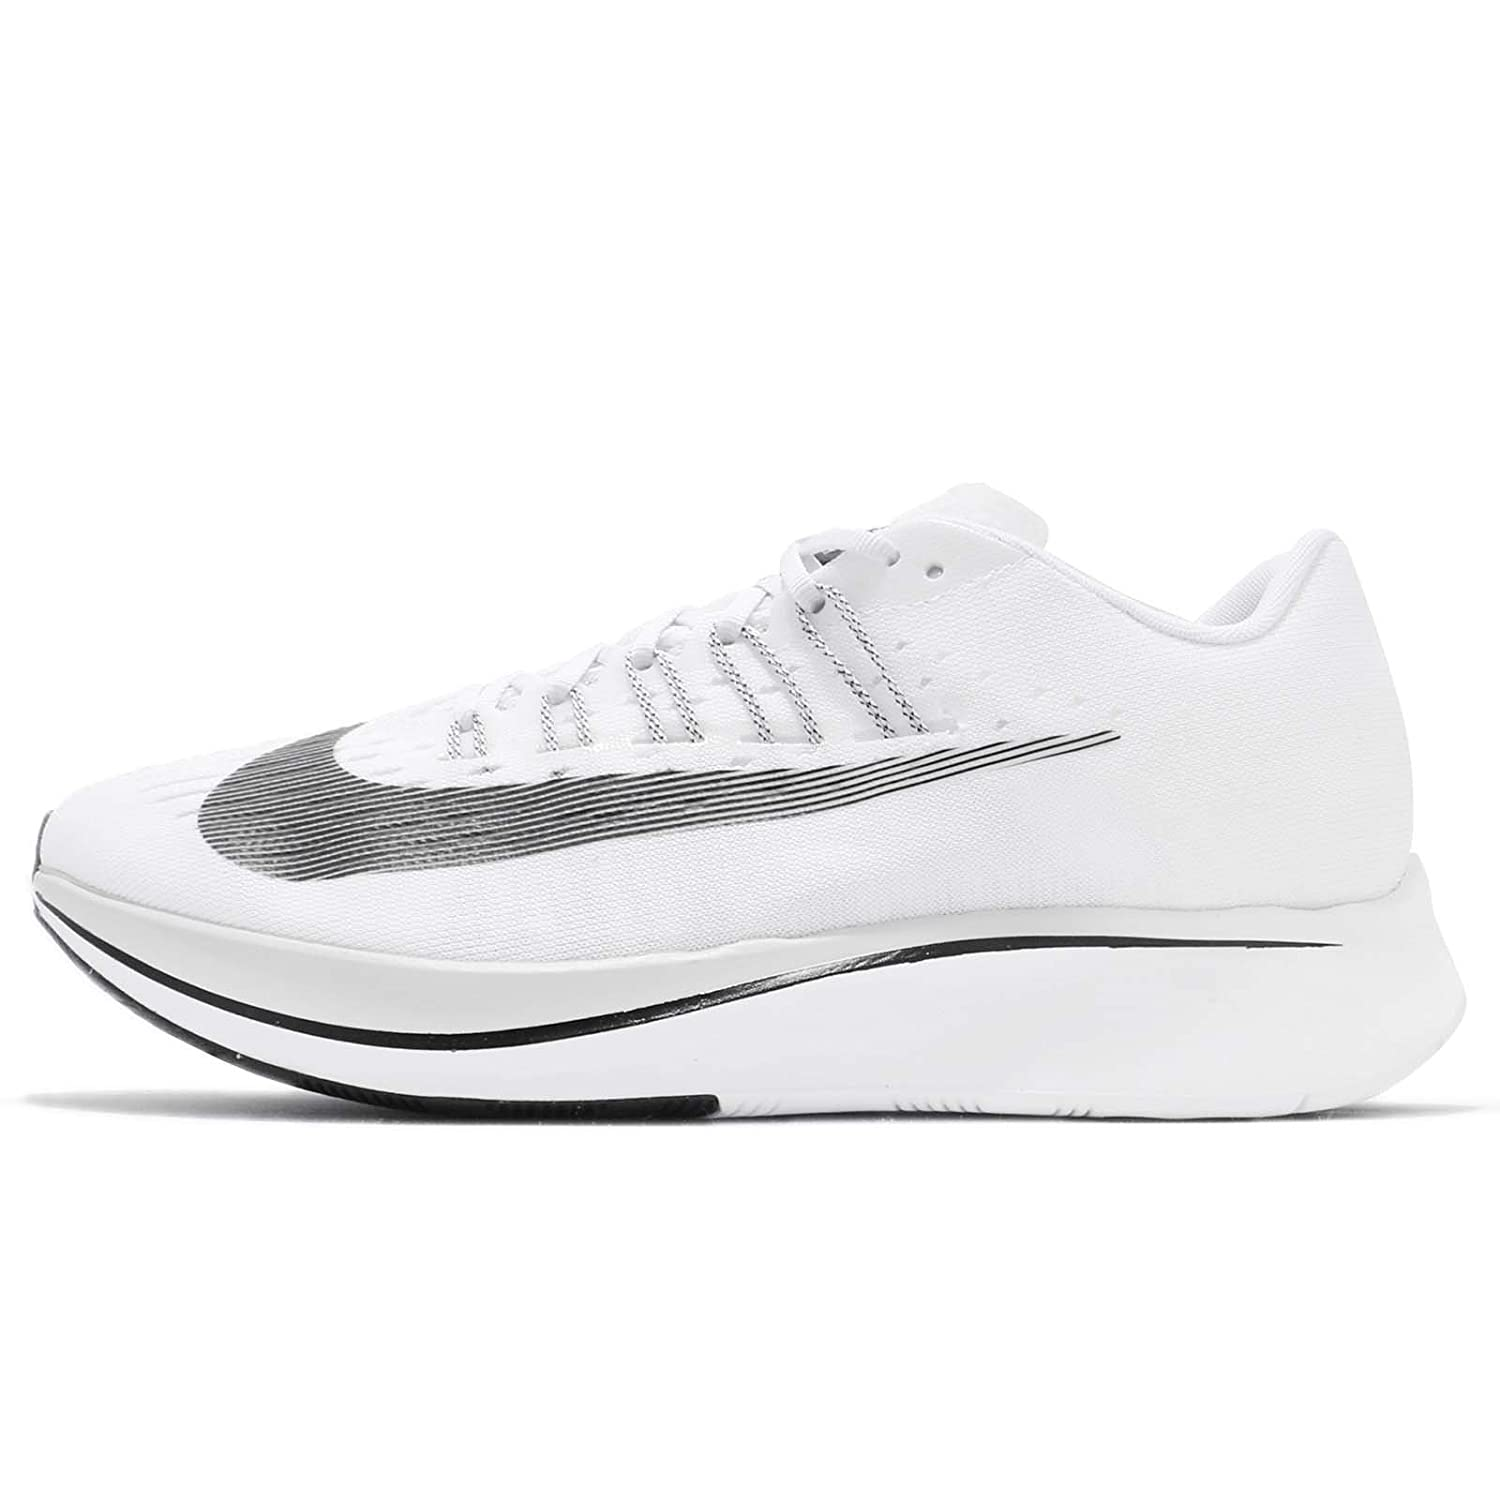 White Black Pure Platinum Nike Mens Zoom Fly SP Lightweight Trainer Running shoes